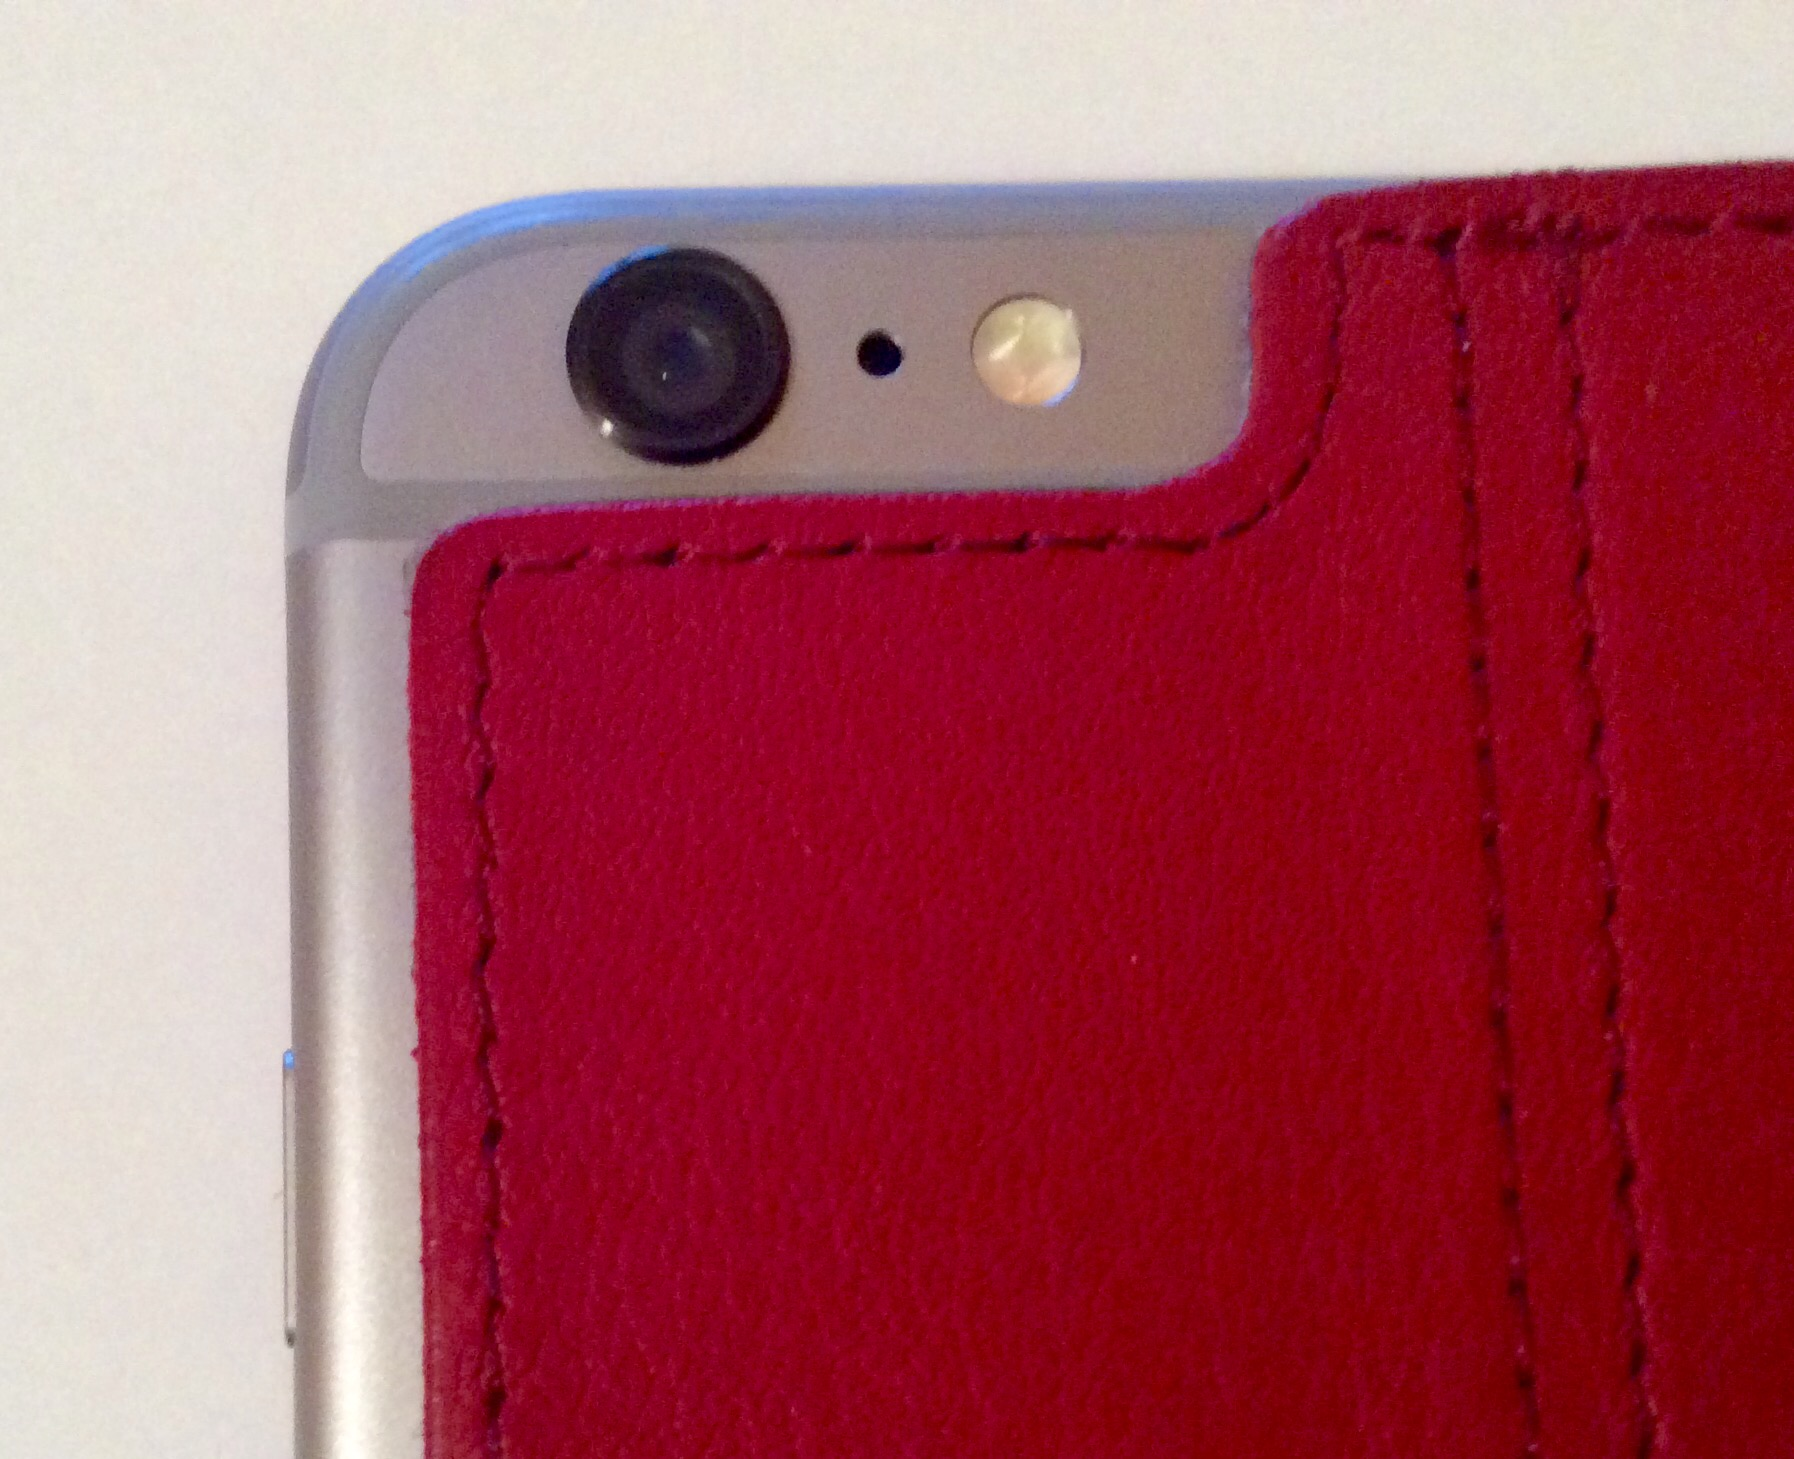 Twelve South SurfacePad for iPhone 6 Plus picture 00003